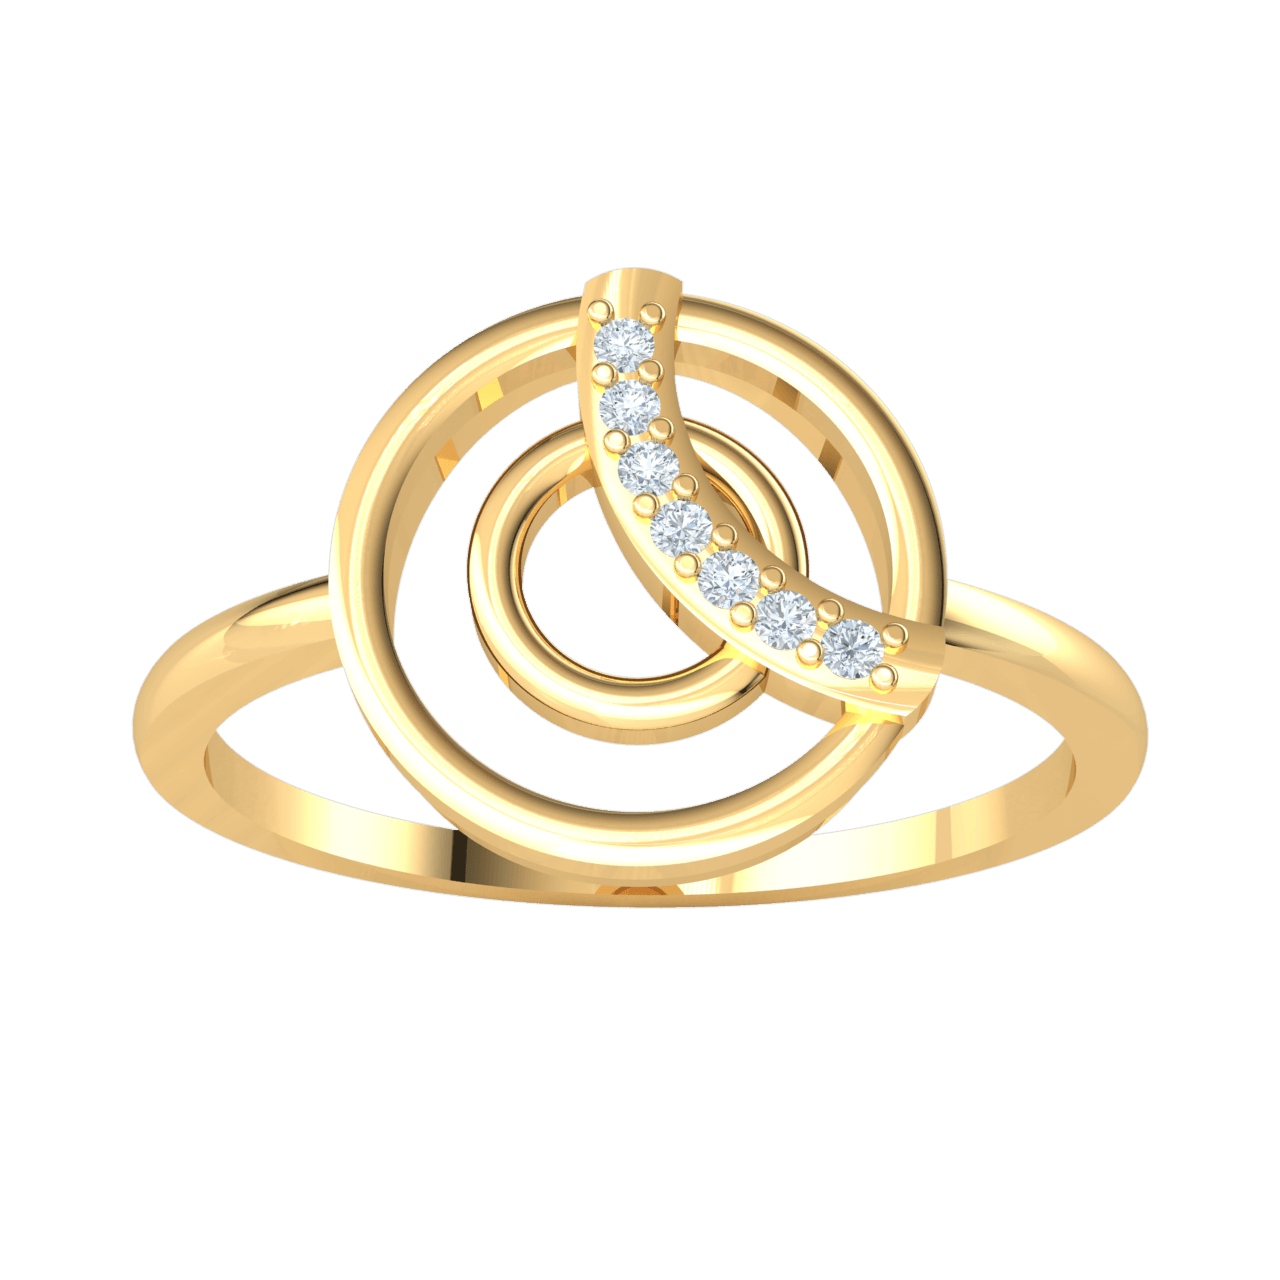 0.04 Ct GH I1 Classic Circular Formation Made Of Real With A Row Of Sparkling White Diamonds in 14 kt Gold